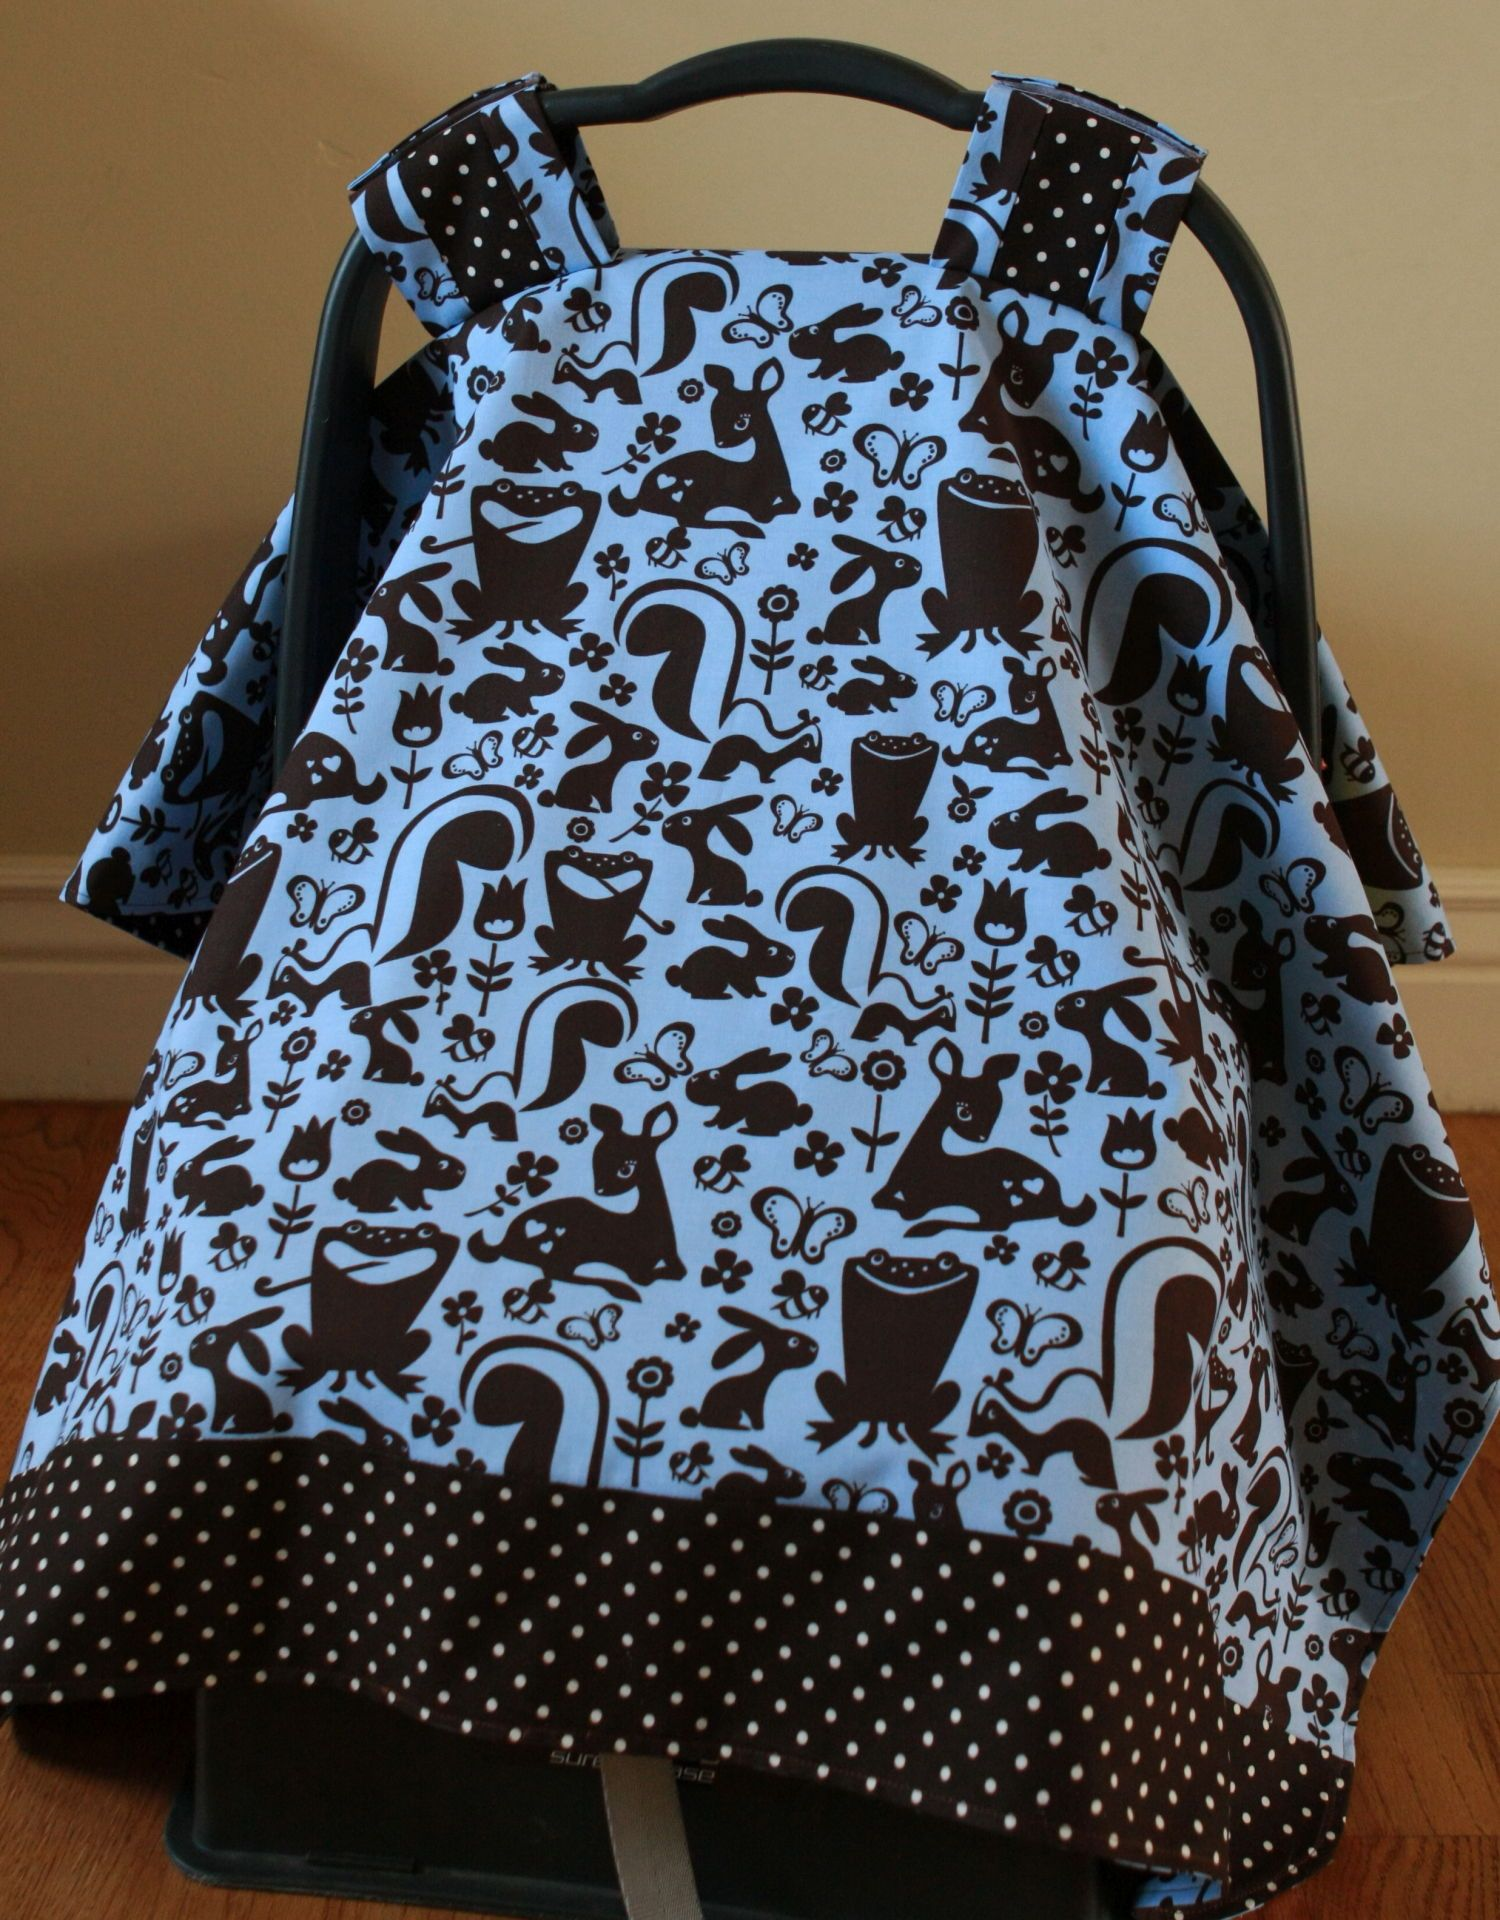 Carseat cover tutorial mostly need this for the dimensions edit baby shower gift car seat cover tutorial mostly need this for the dimensions edit good tutorial super simple sewing project great baby shower gift or bankloansurffo Images